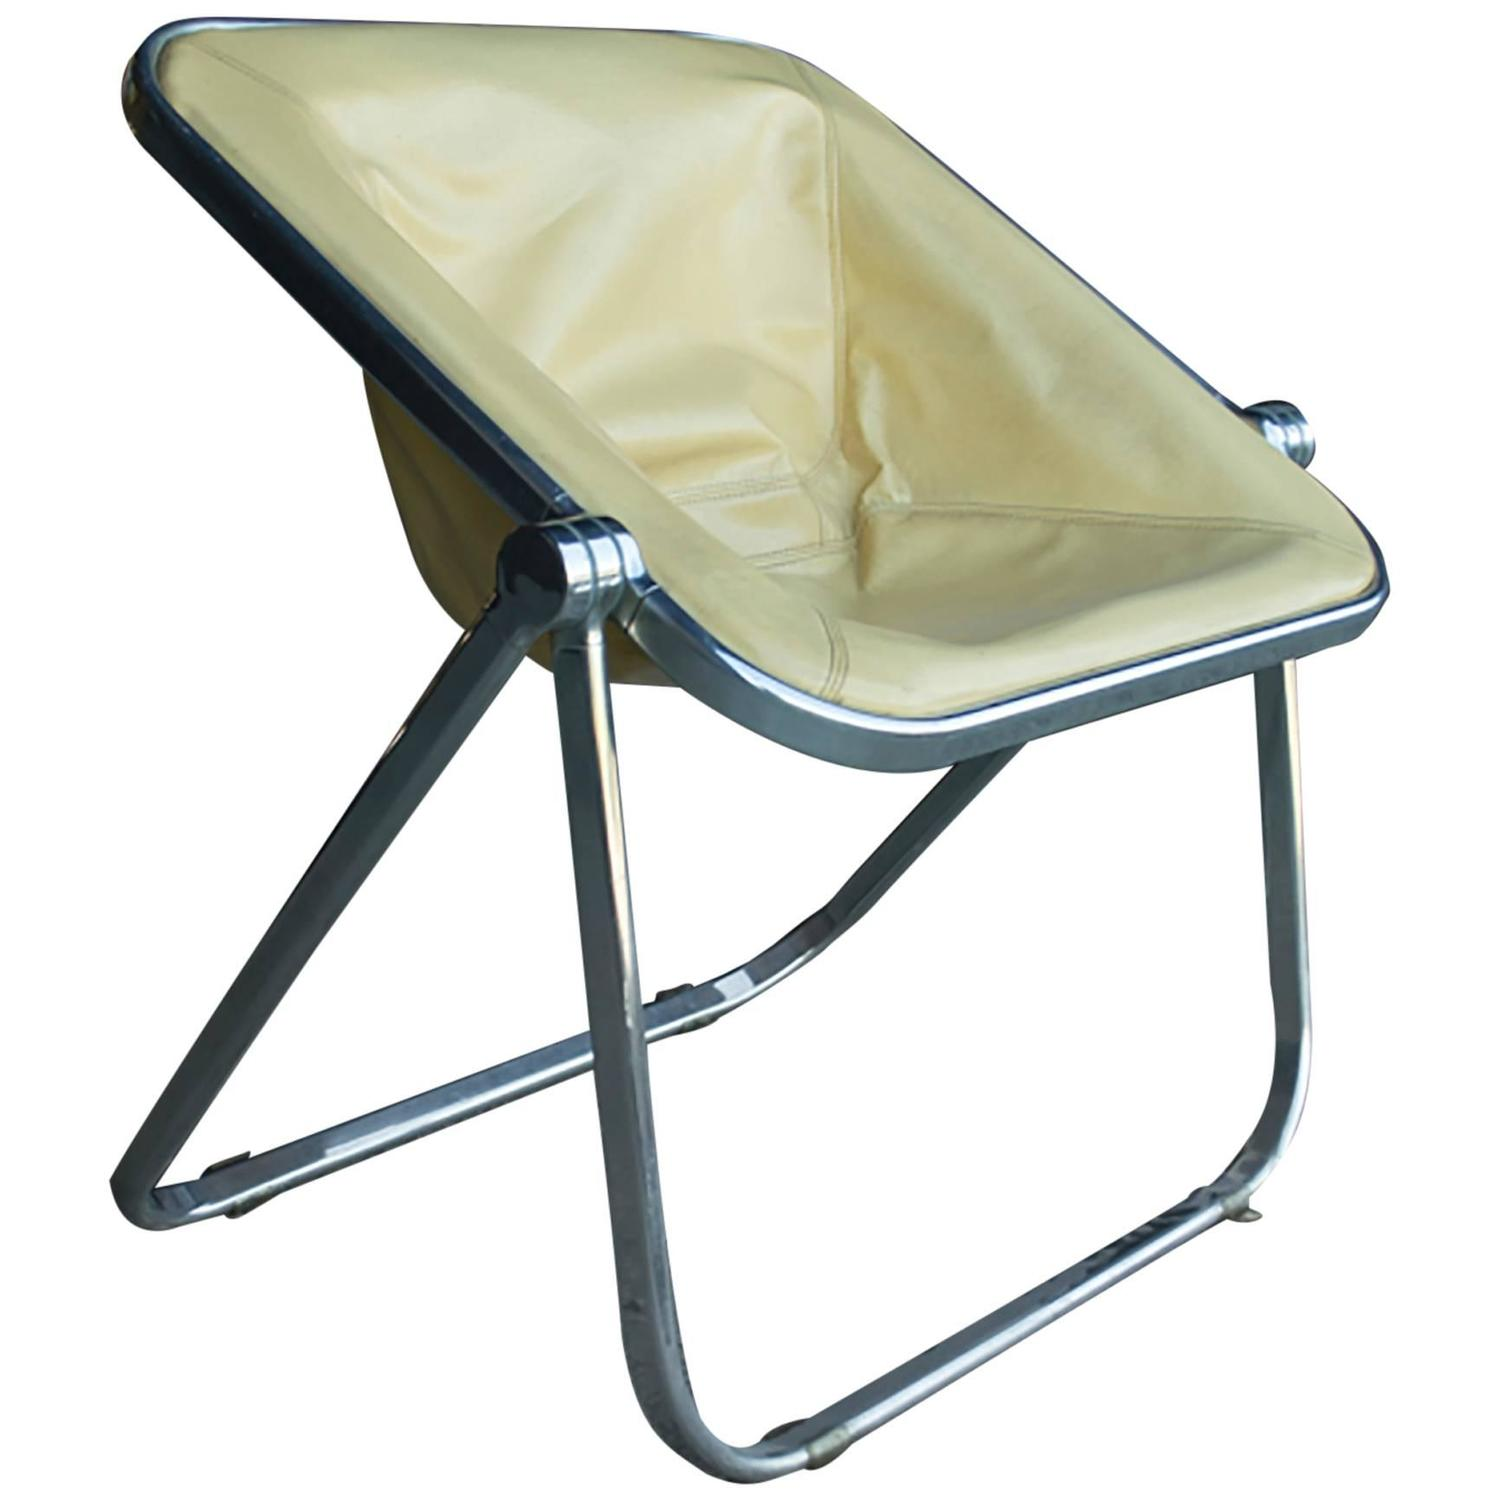 Leather Plona Folding Chair For Sale at 1stdibs